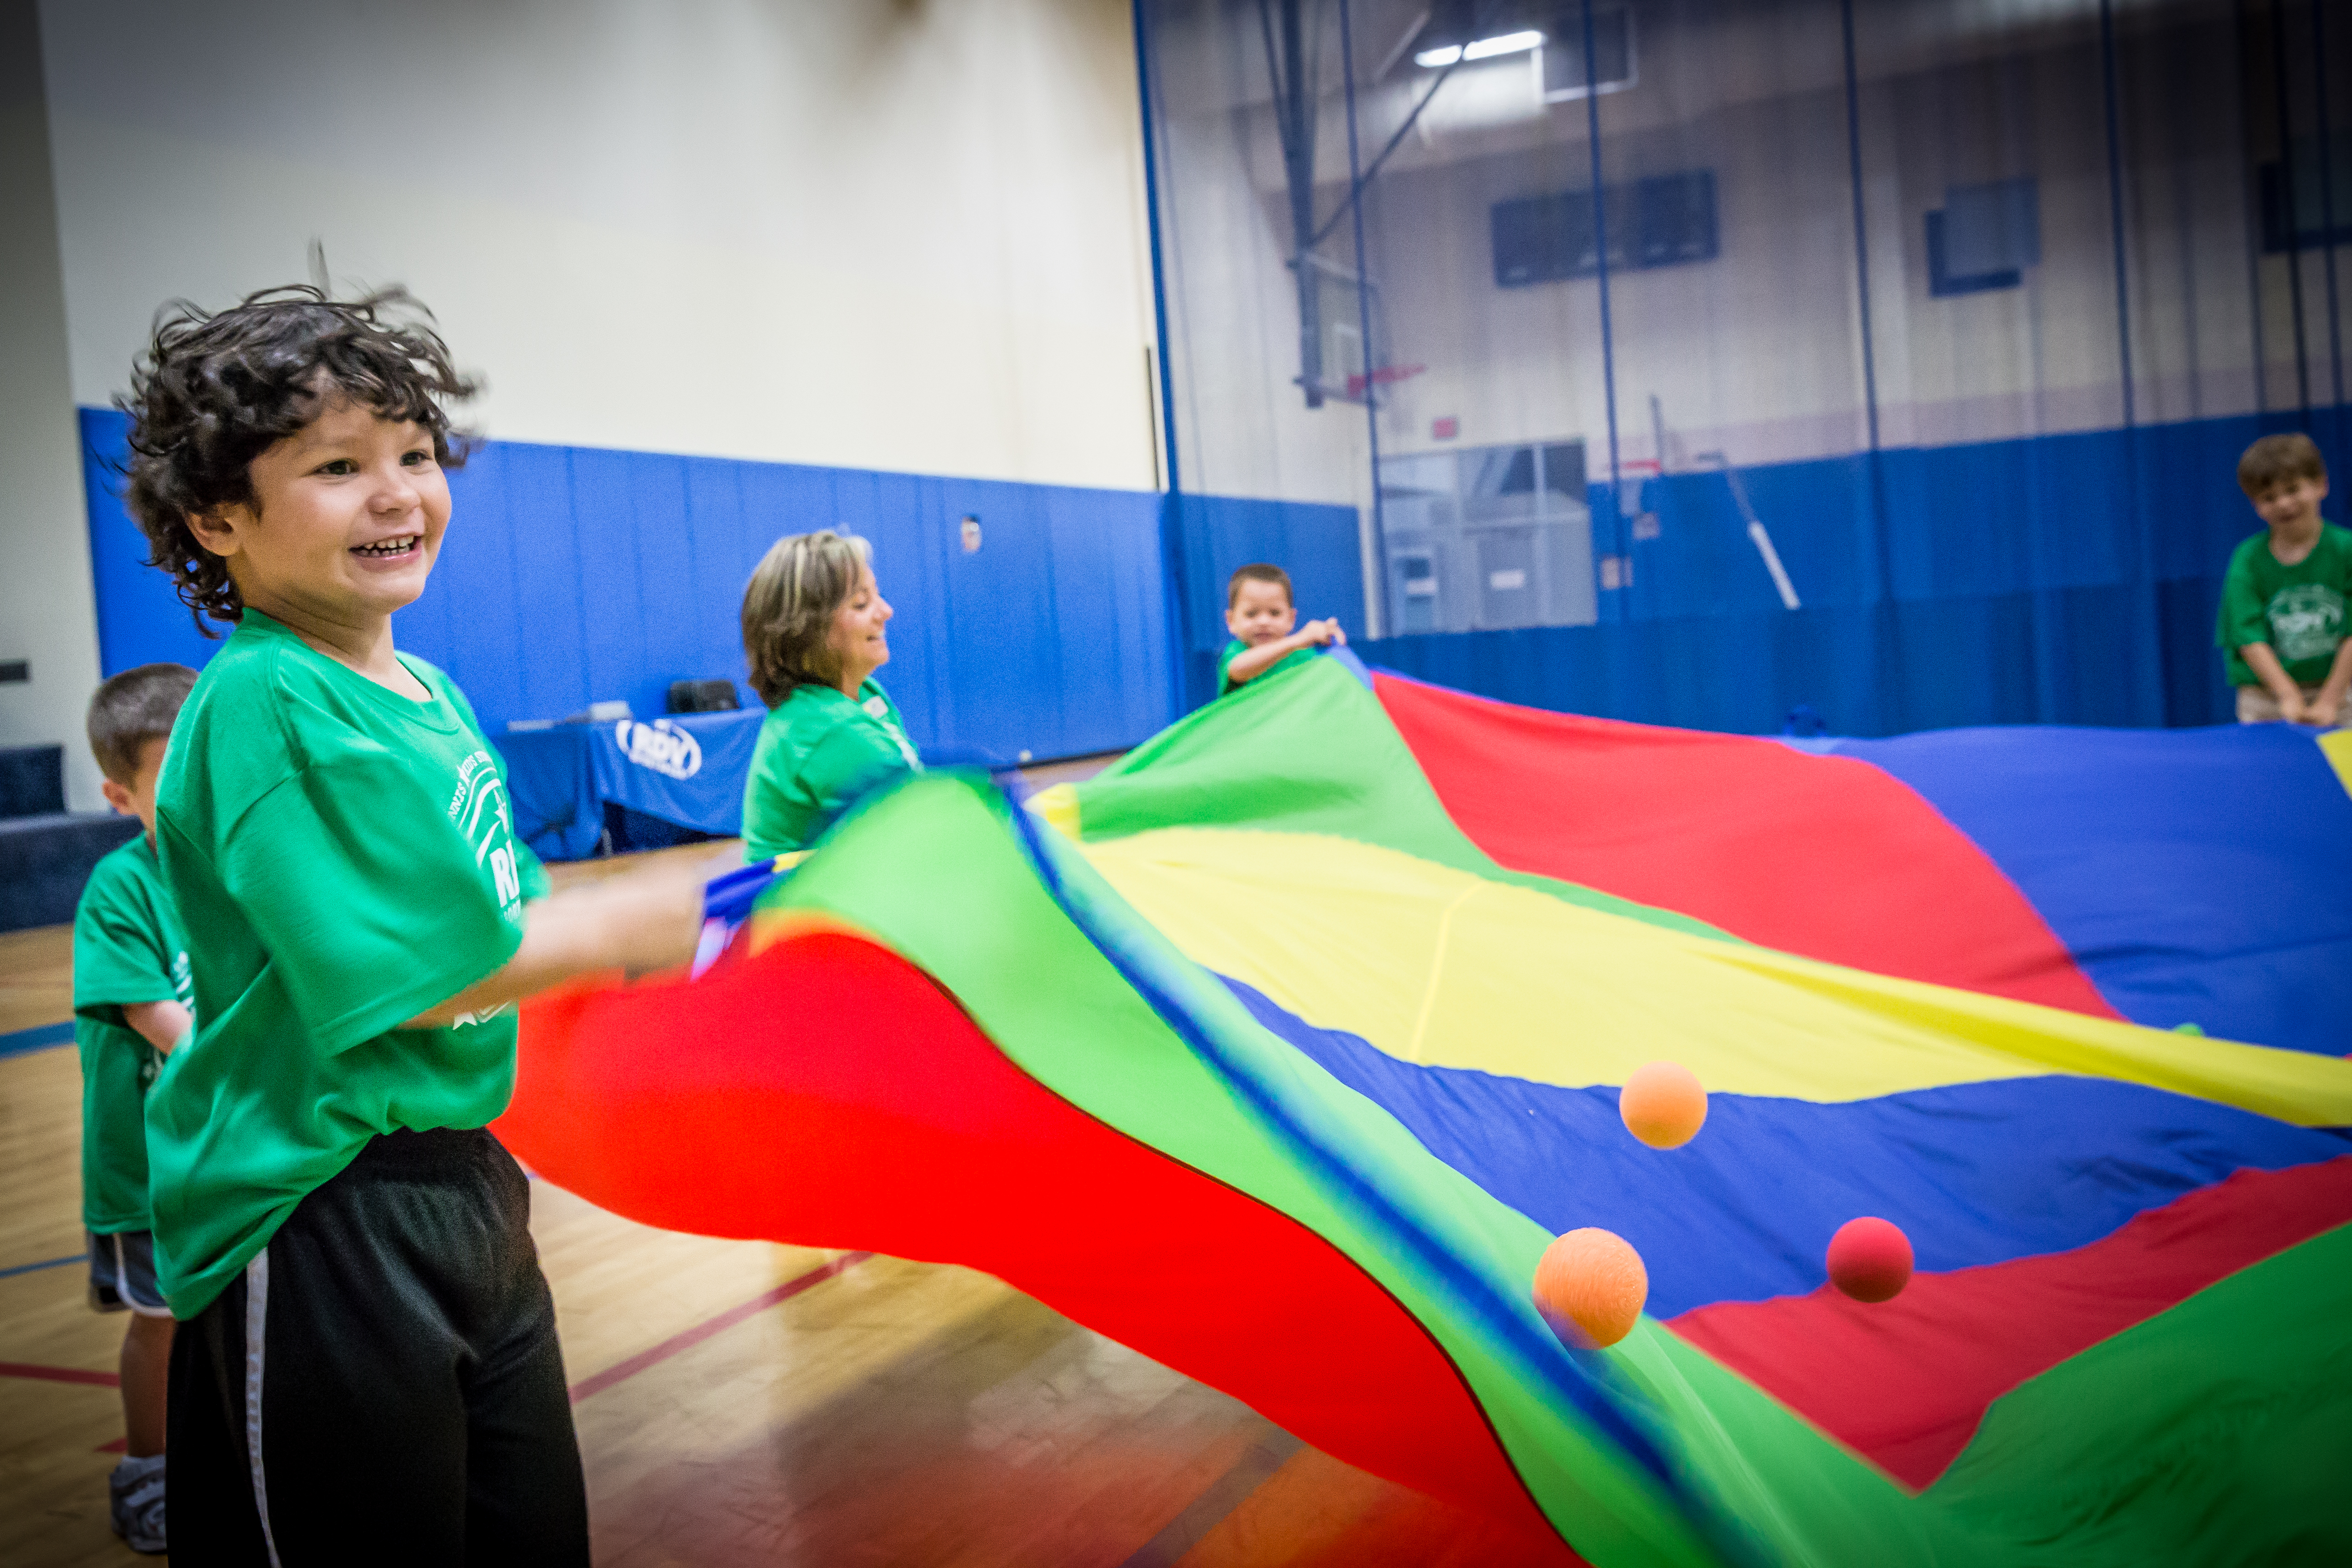 With everything from specific sports camps to camps focusing on general recreational fun, RDV Sportsplex has summer programs both parents and children will love.